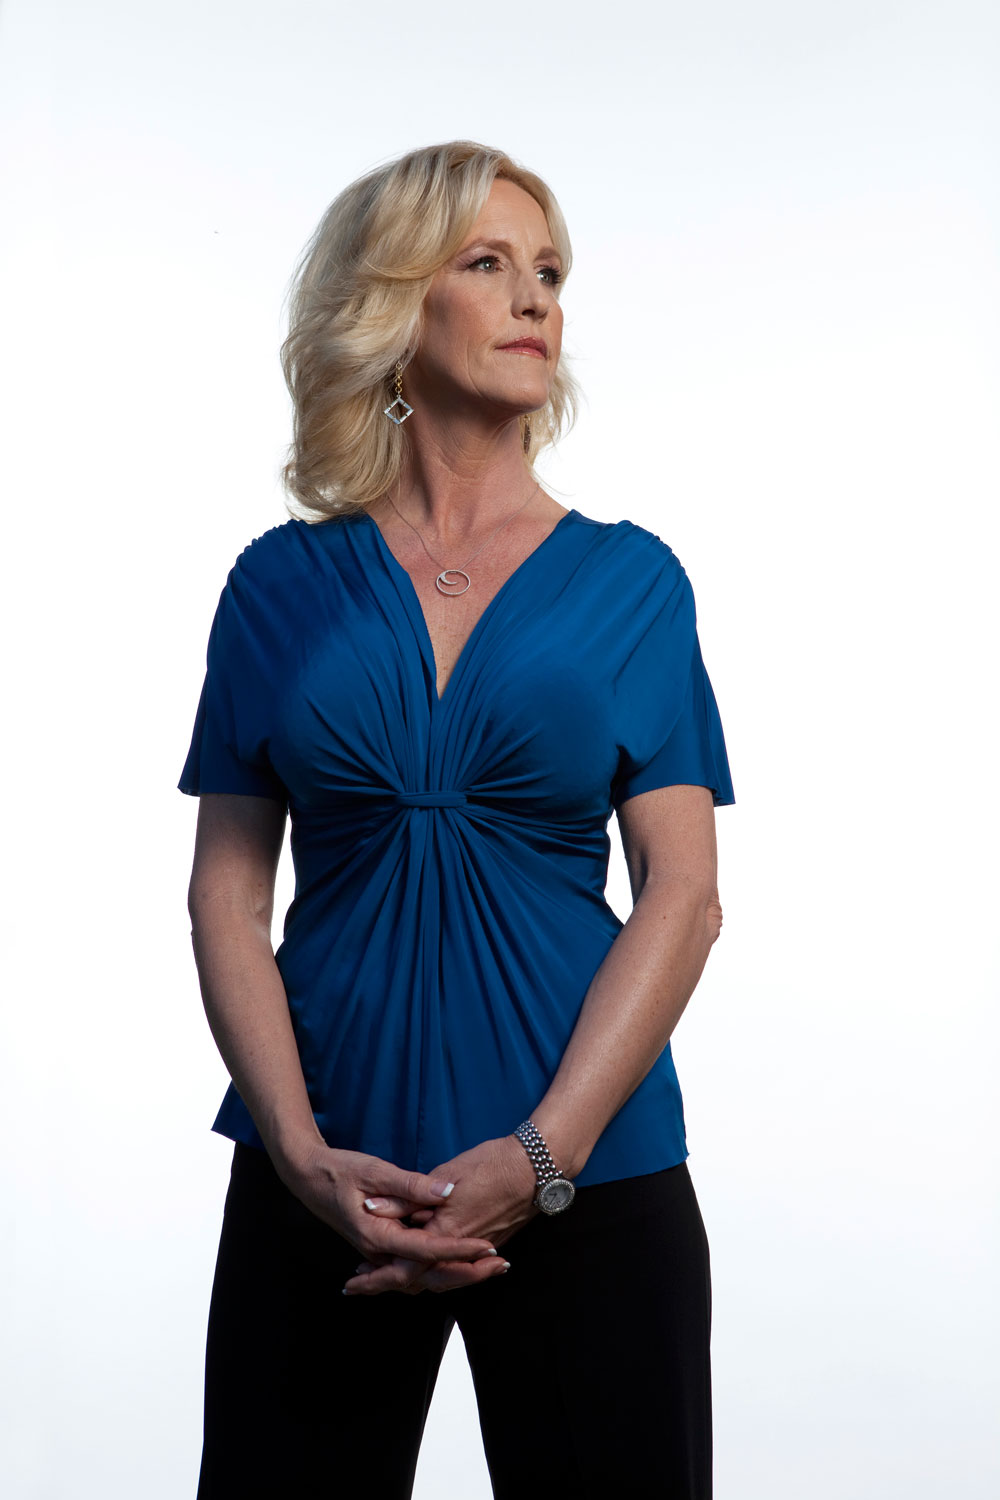 Erin Brokovitch, for Discovery Channel.